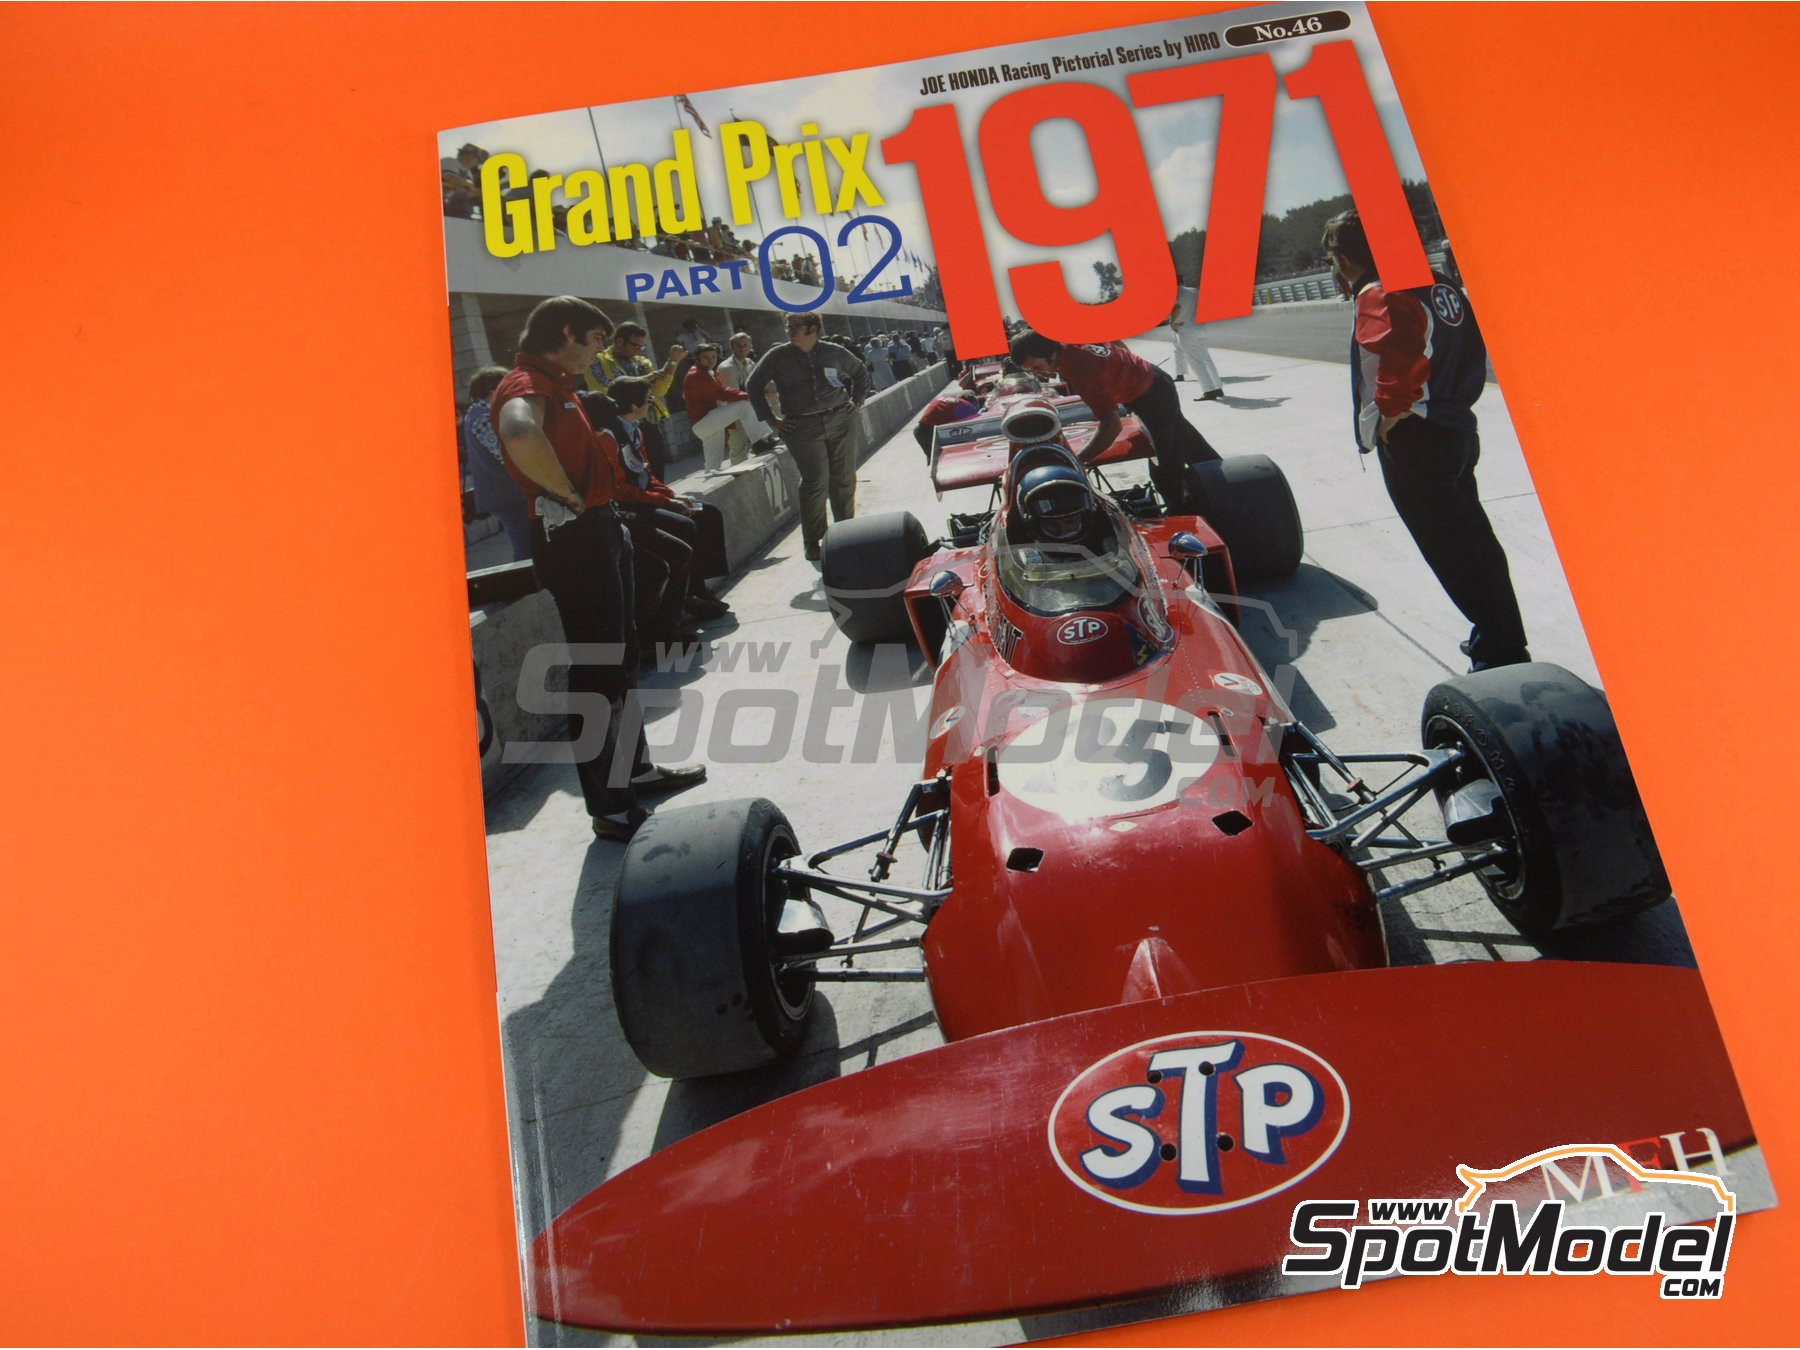 Image 1: Joe Honda Racing Pictorial Series: Grand Prix, parte 2 -  1971 | Libro de referencia fabricado por Model Factory Hiro (ref. MFH-JH46)